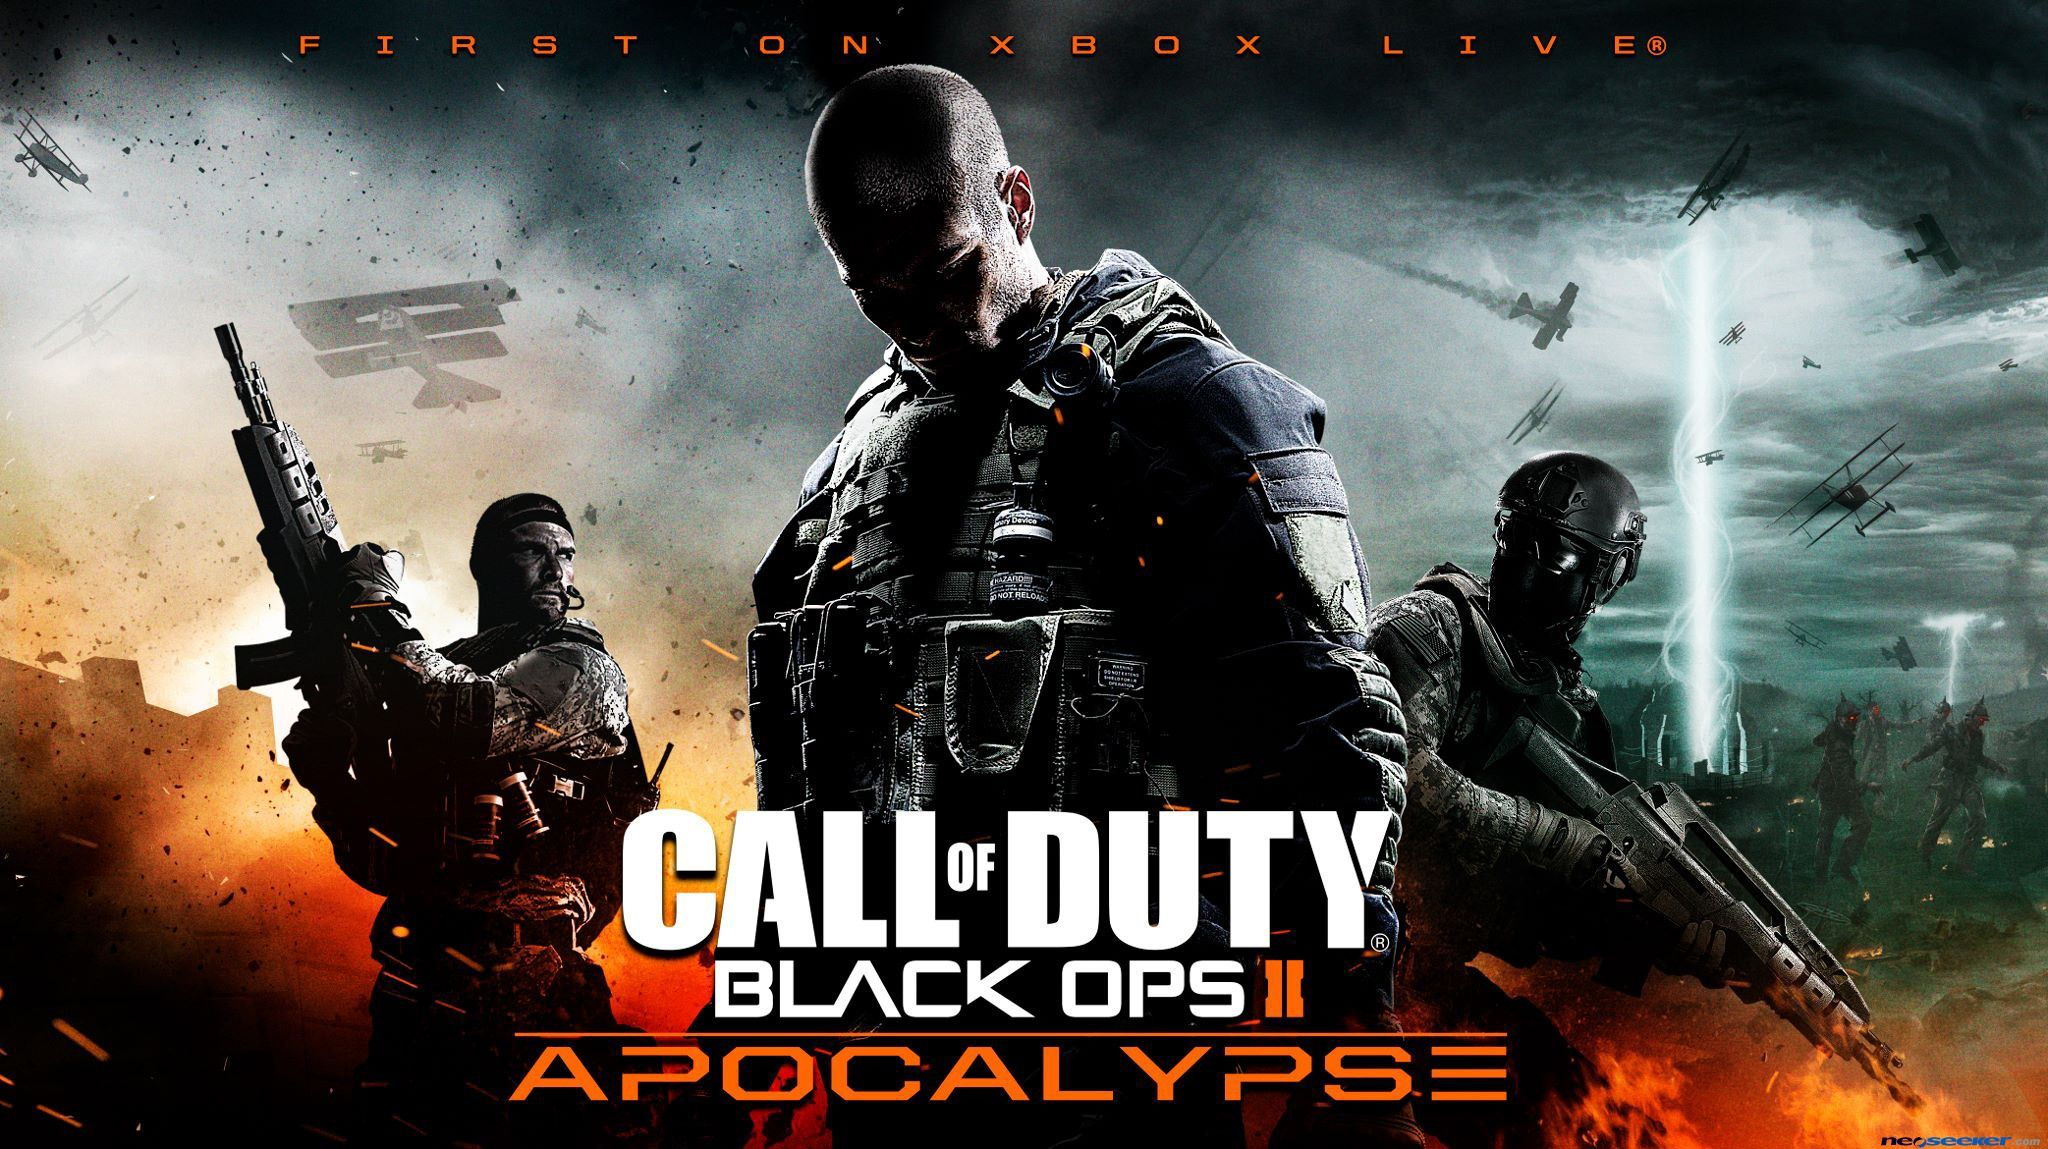 Call Of Duty Black Ops 2 Wallpaper Hd Call Of Duty Call Of Duty Black Black Ops